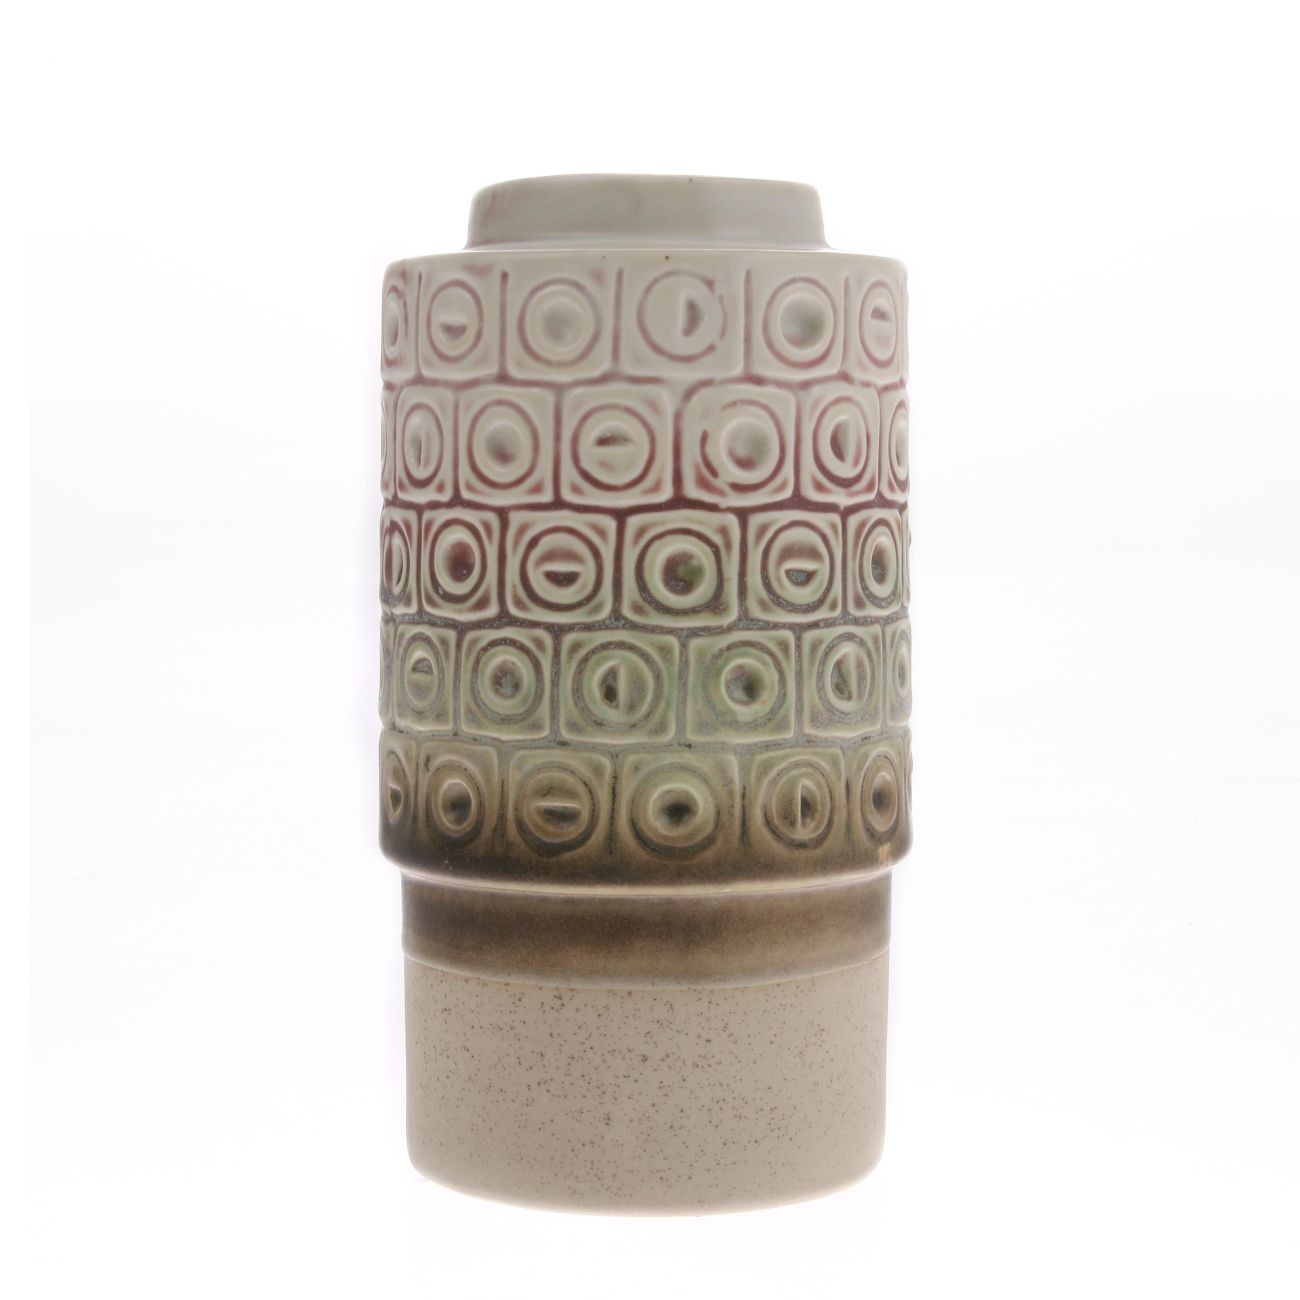 HK living ceramic retro Vase HKACE6706